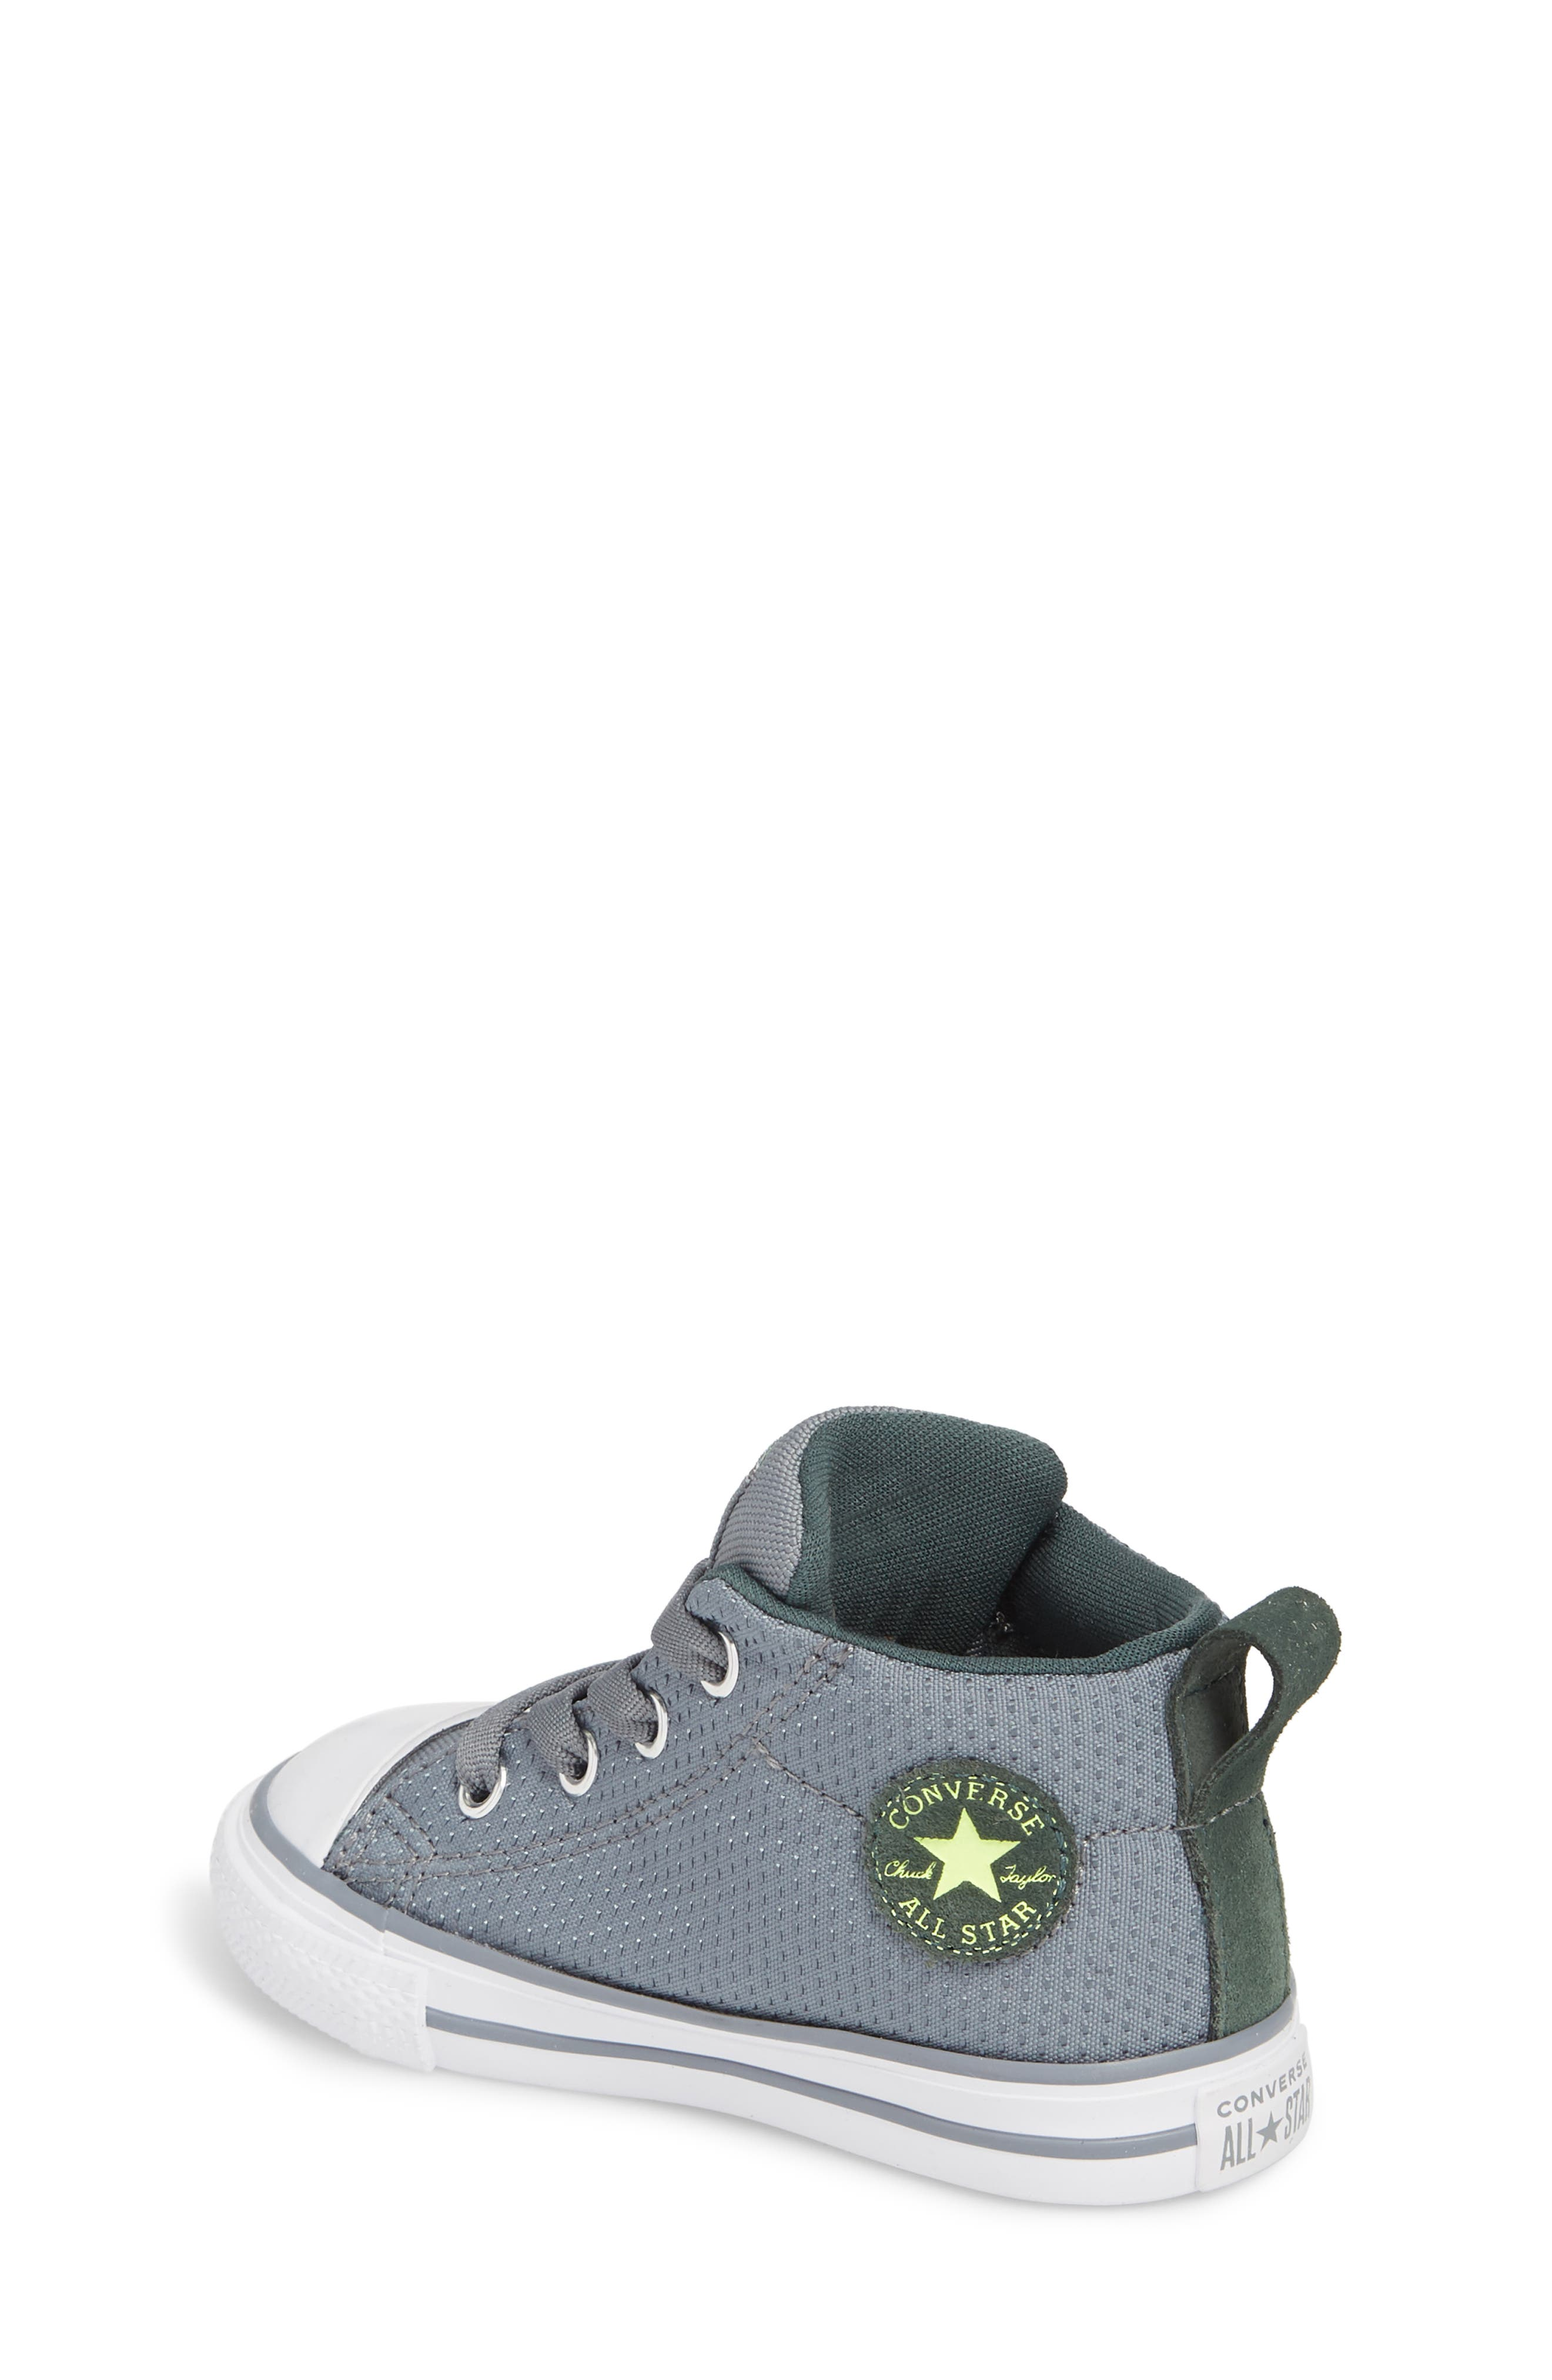 Chuck Taylor<sup>®</sup> All Star<sup>®</sup> Street Mid Top Sneaker,                             Alternate thumbnail 2, color,                             PALE GREY